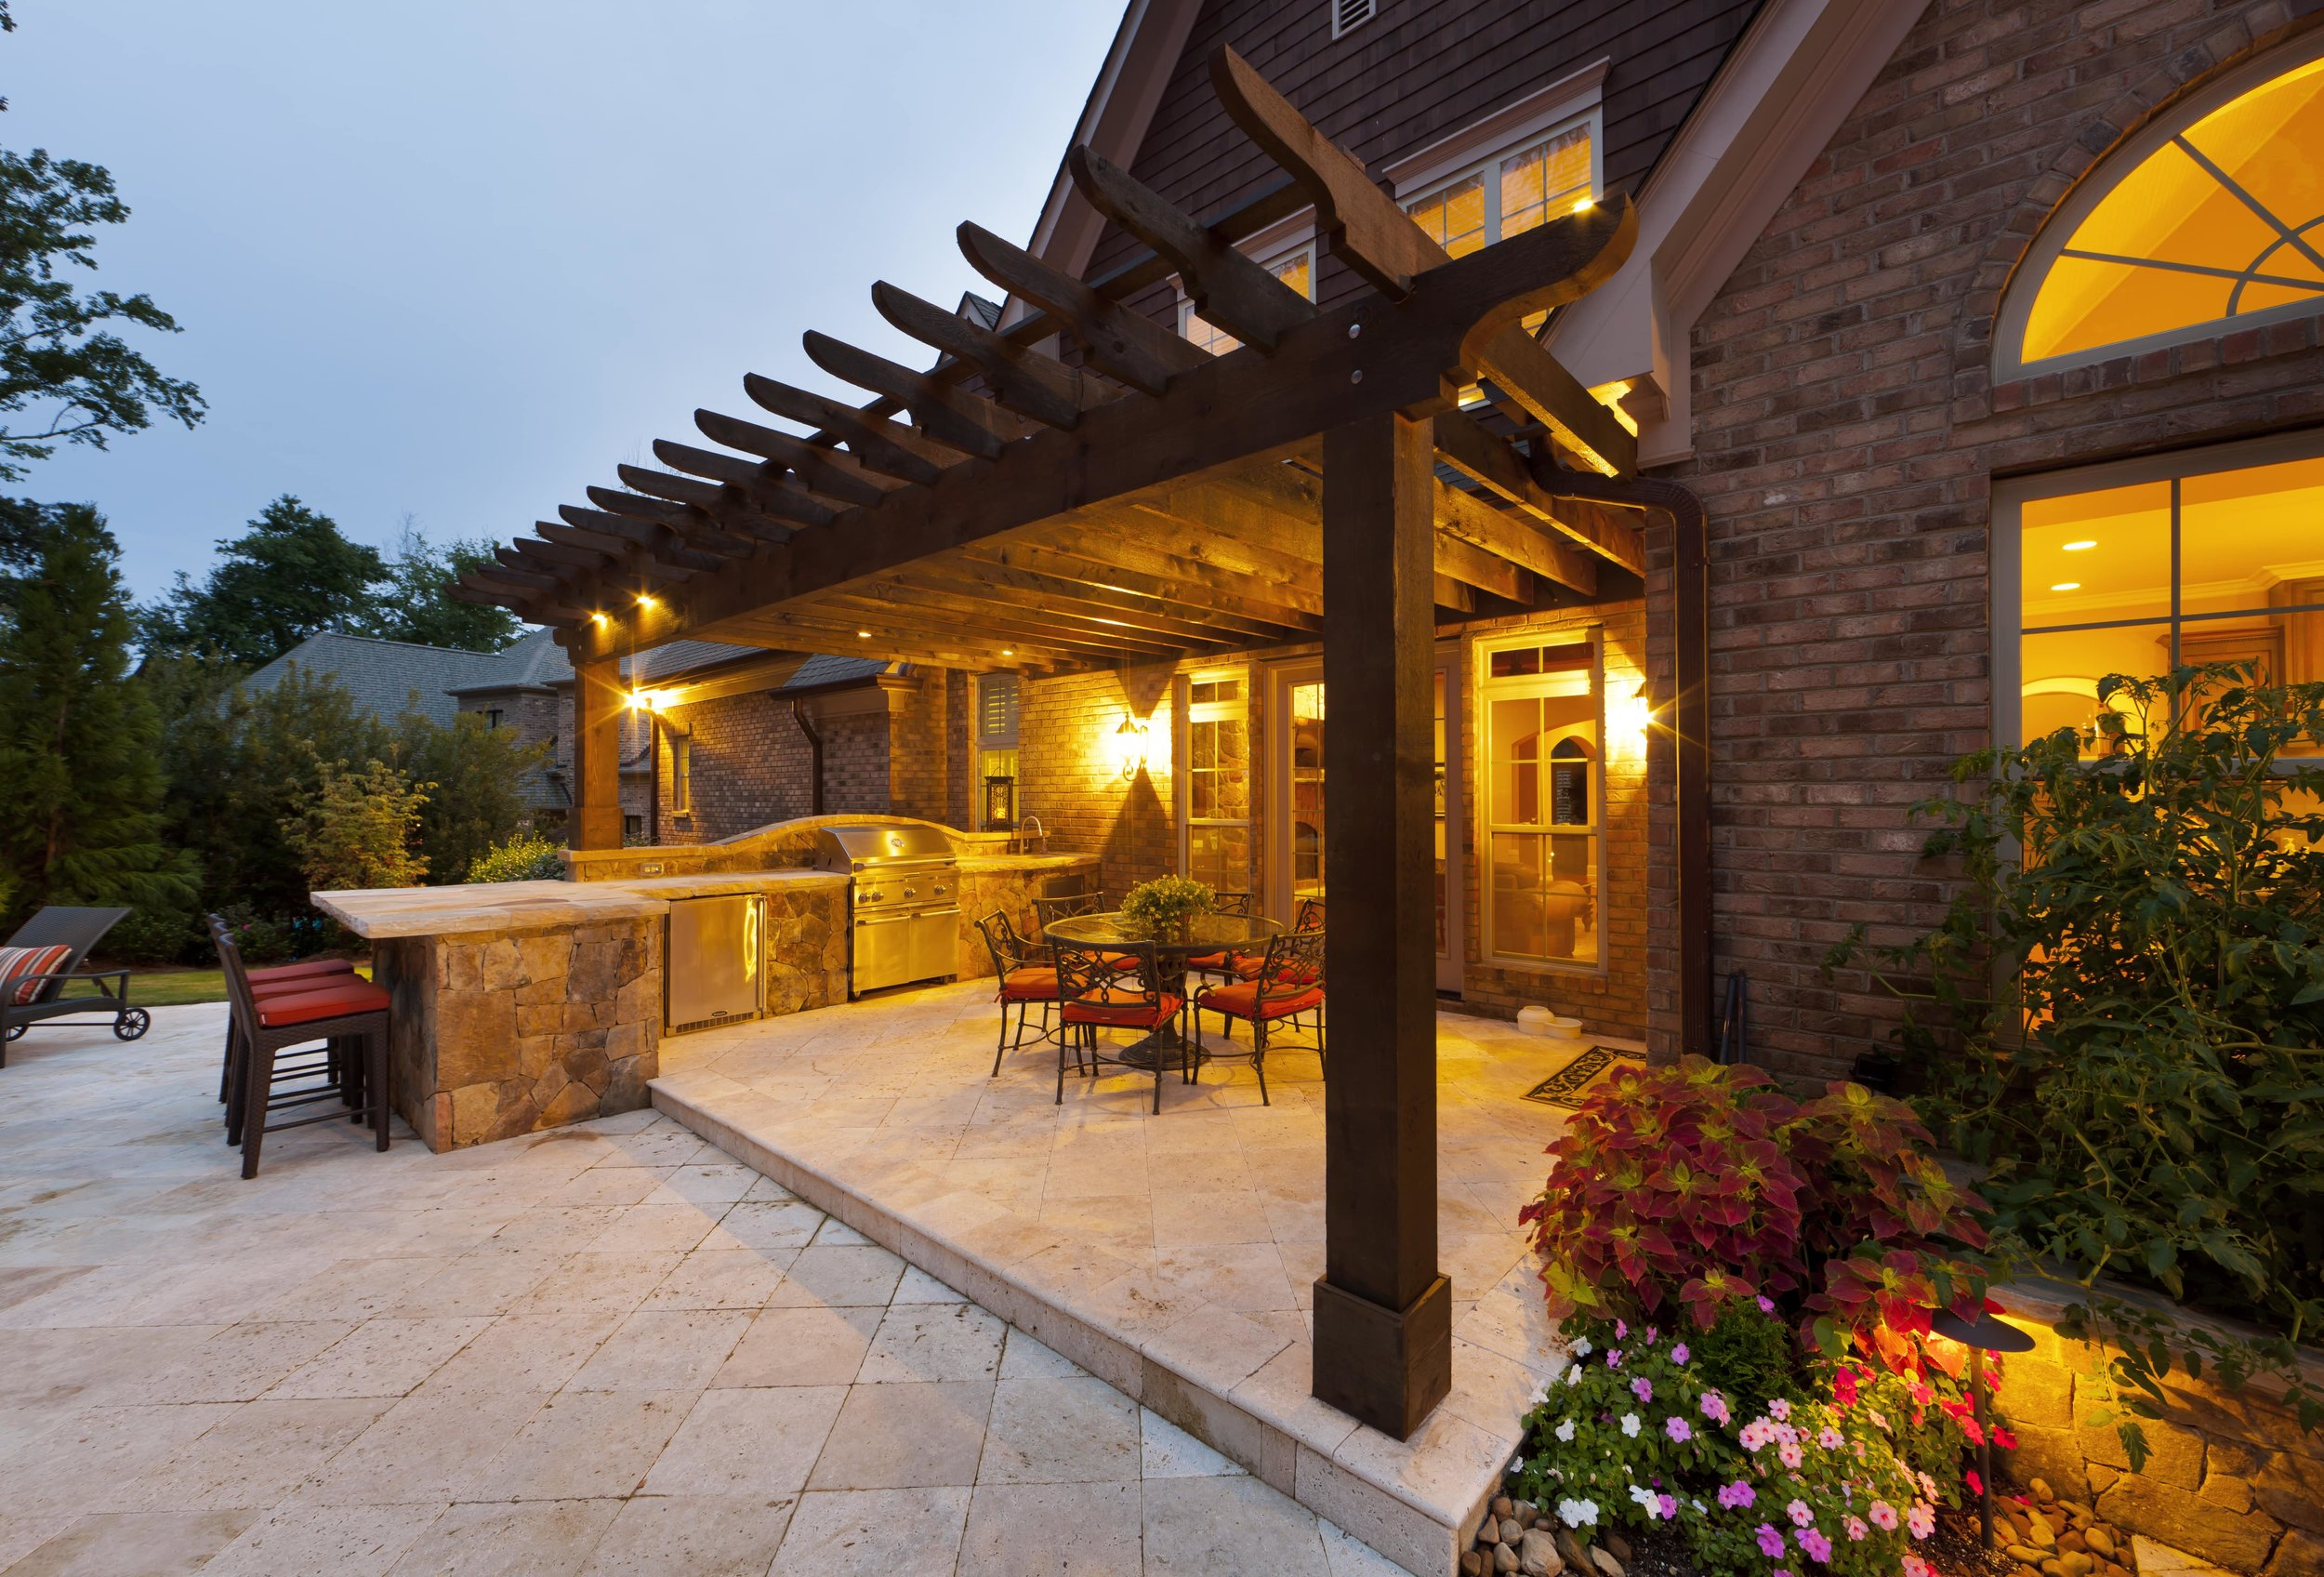 The travertine pool decking flows seamlessly up to the raised dining and grilling space. Plenty of space for a crowd to hang out and eat dinner.